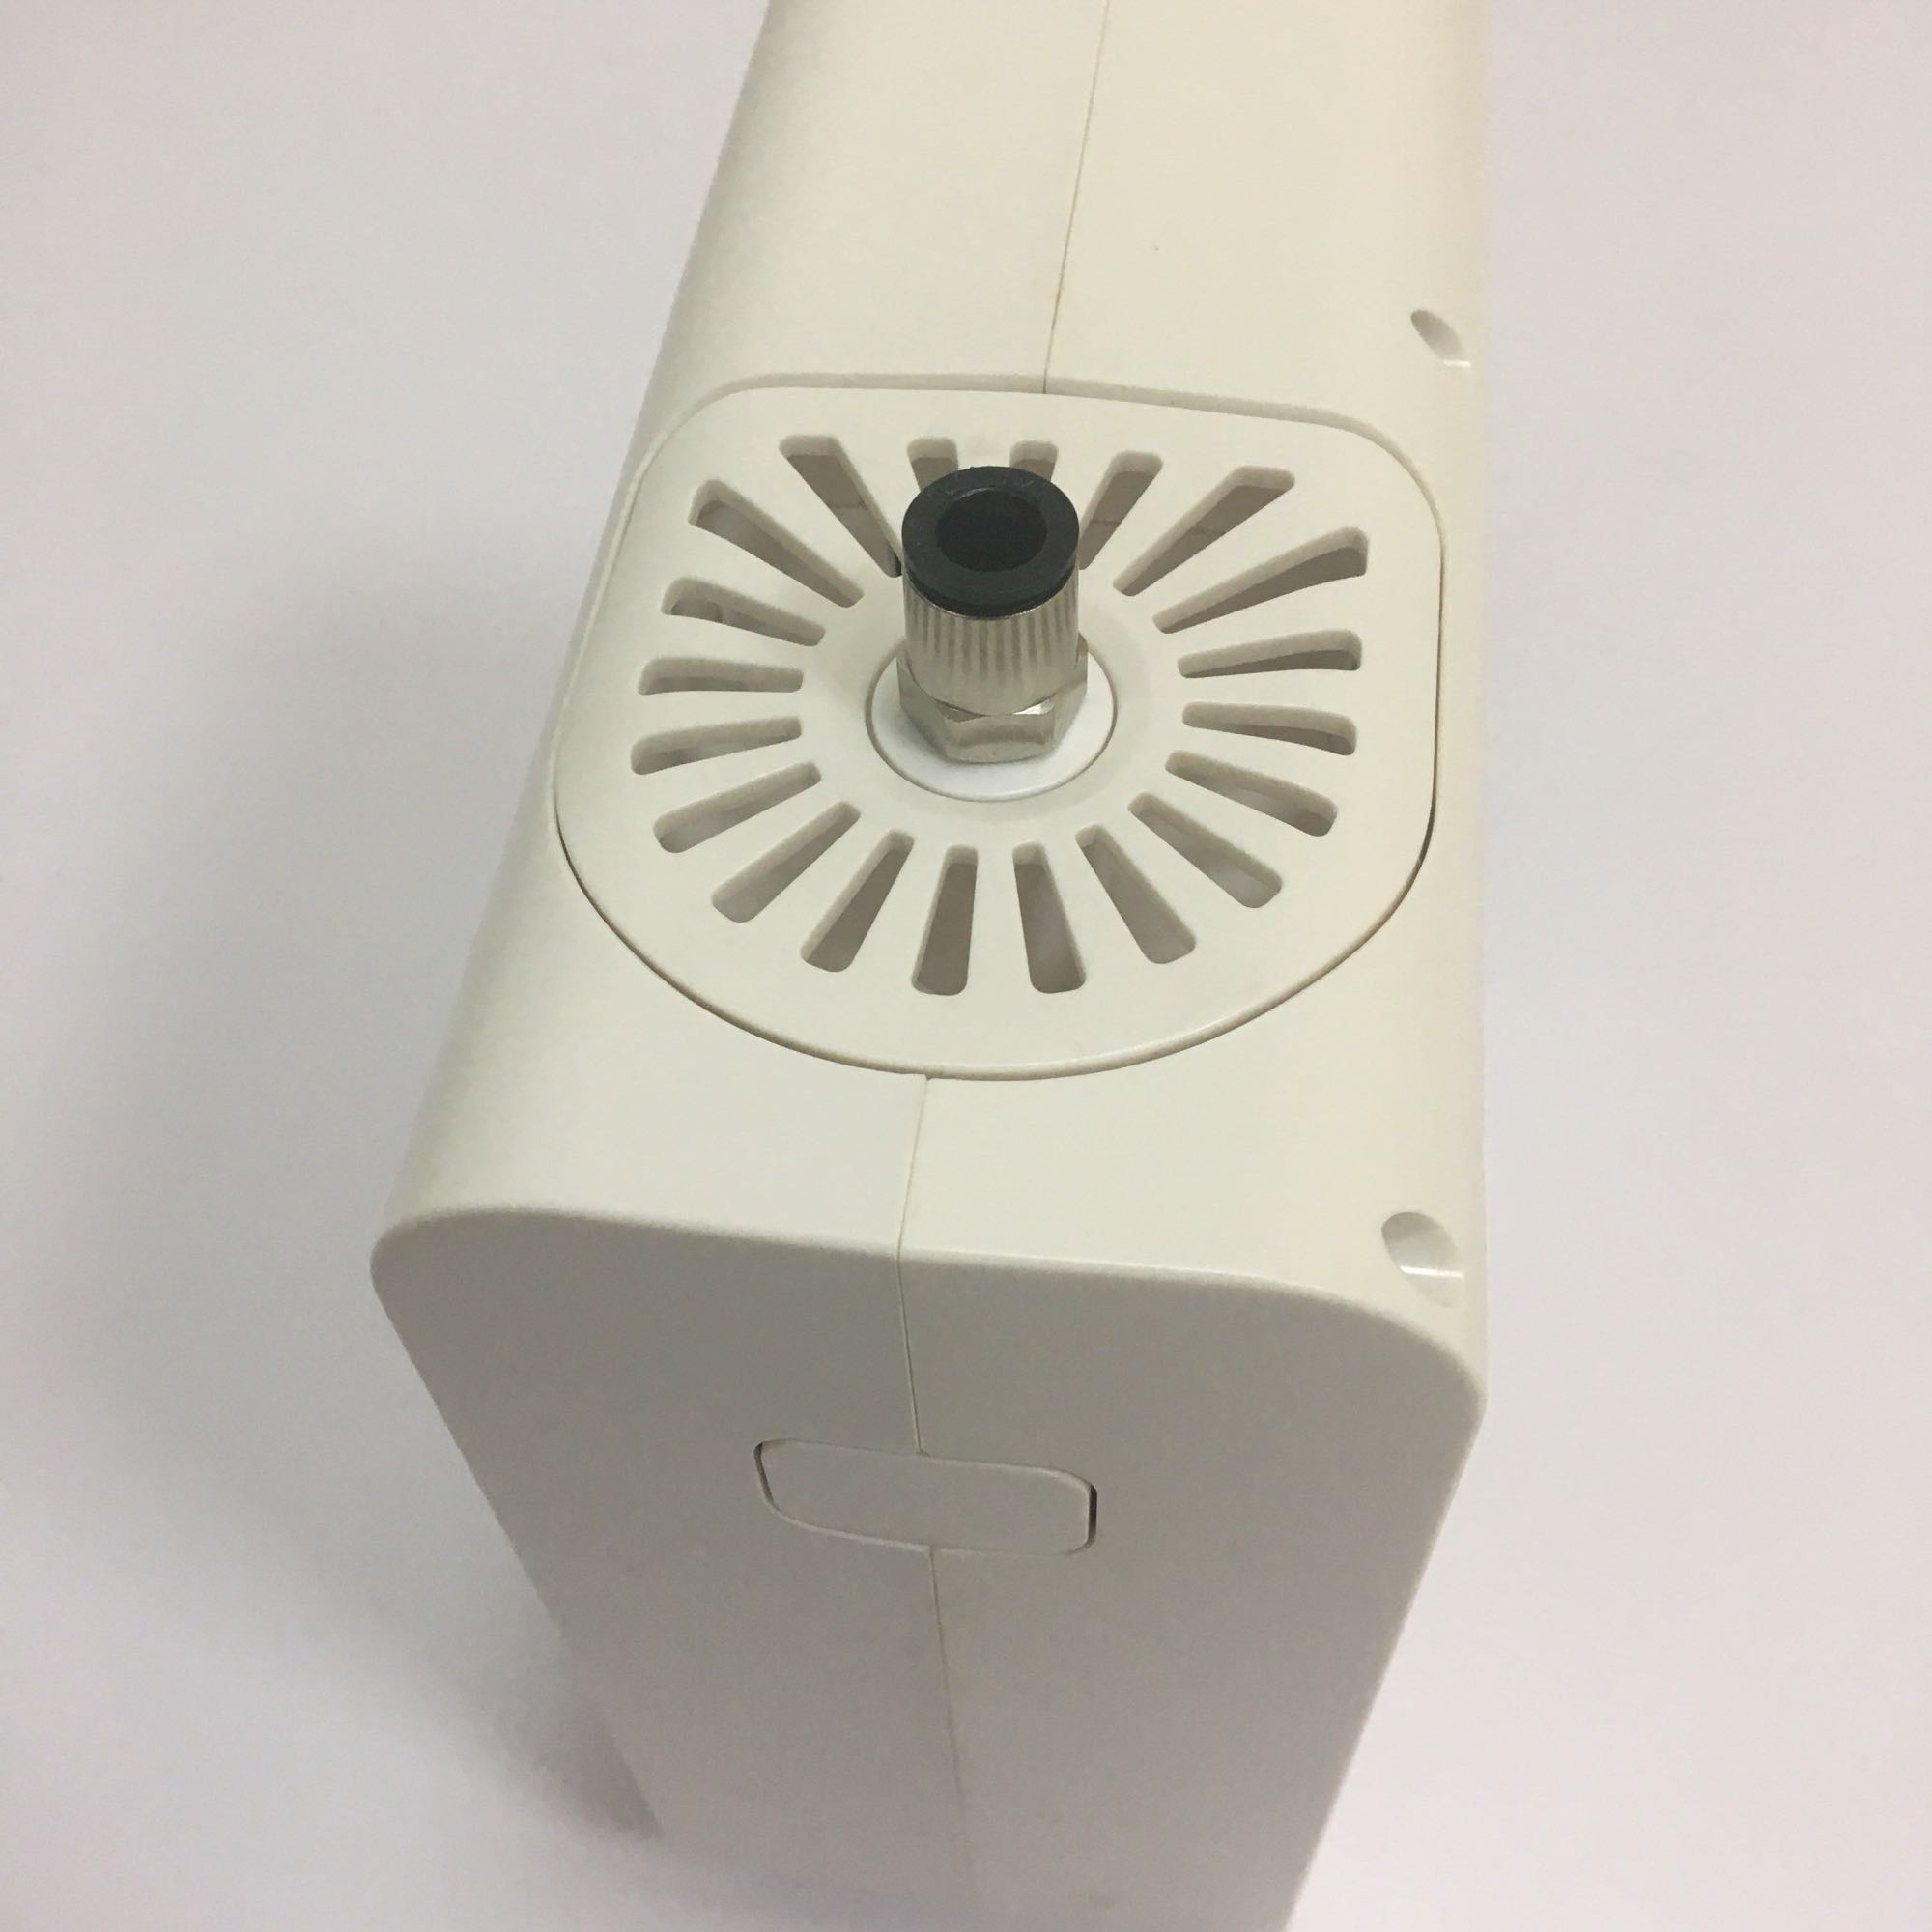 2019 Electric Home Fragrance Diffuser Ouwave Scent Air Machine For Sale